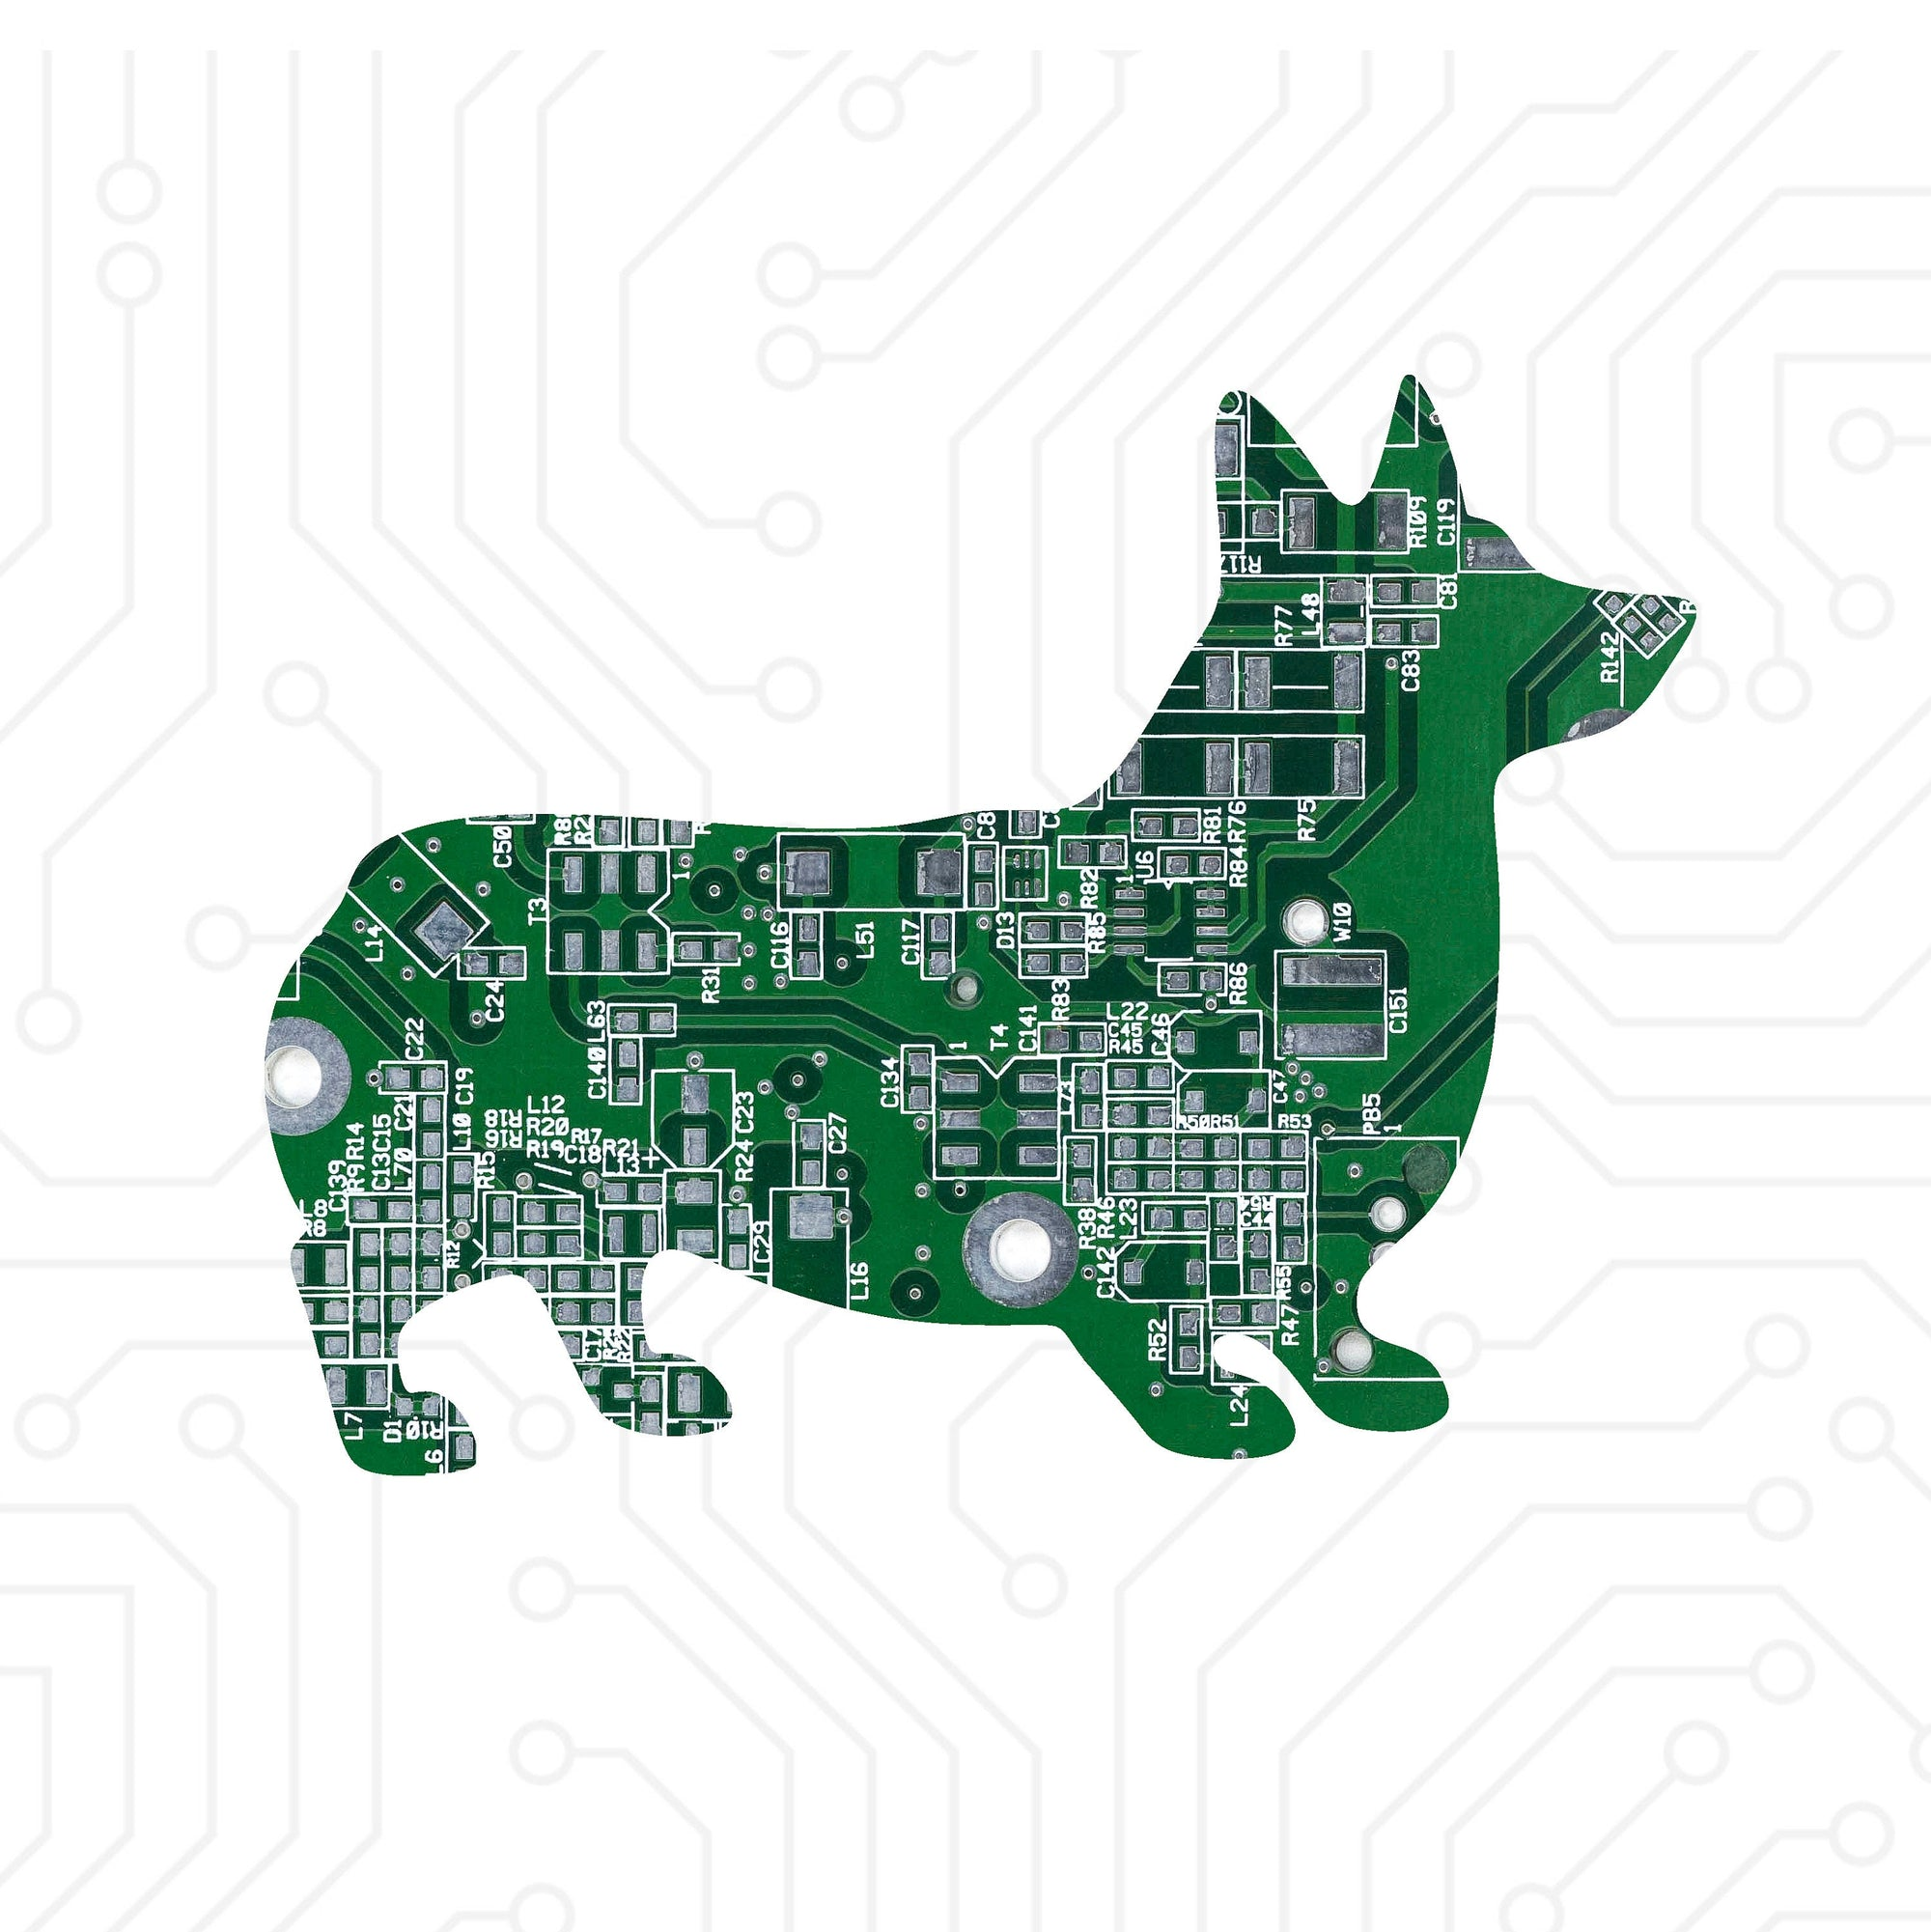 Circuit Board Corgi - TechWears Ltd